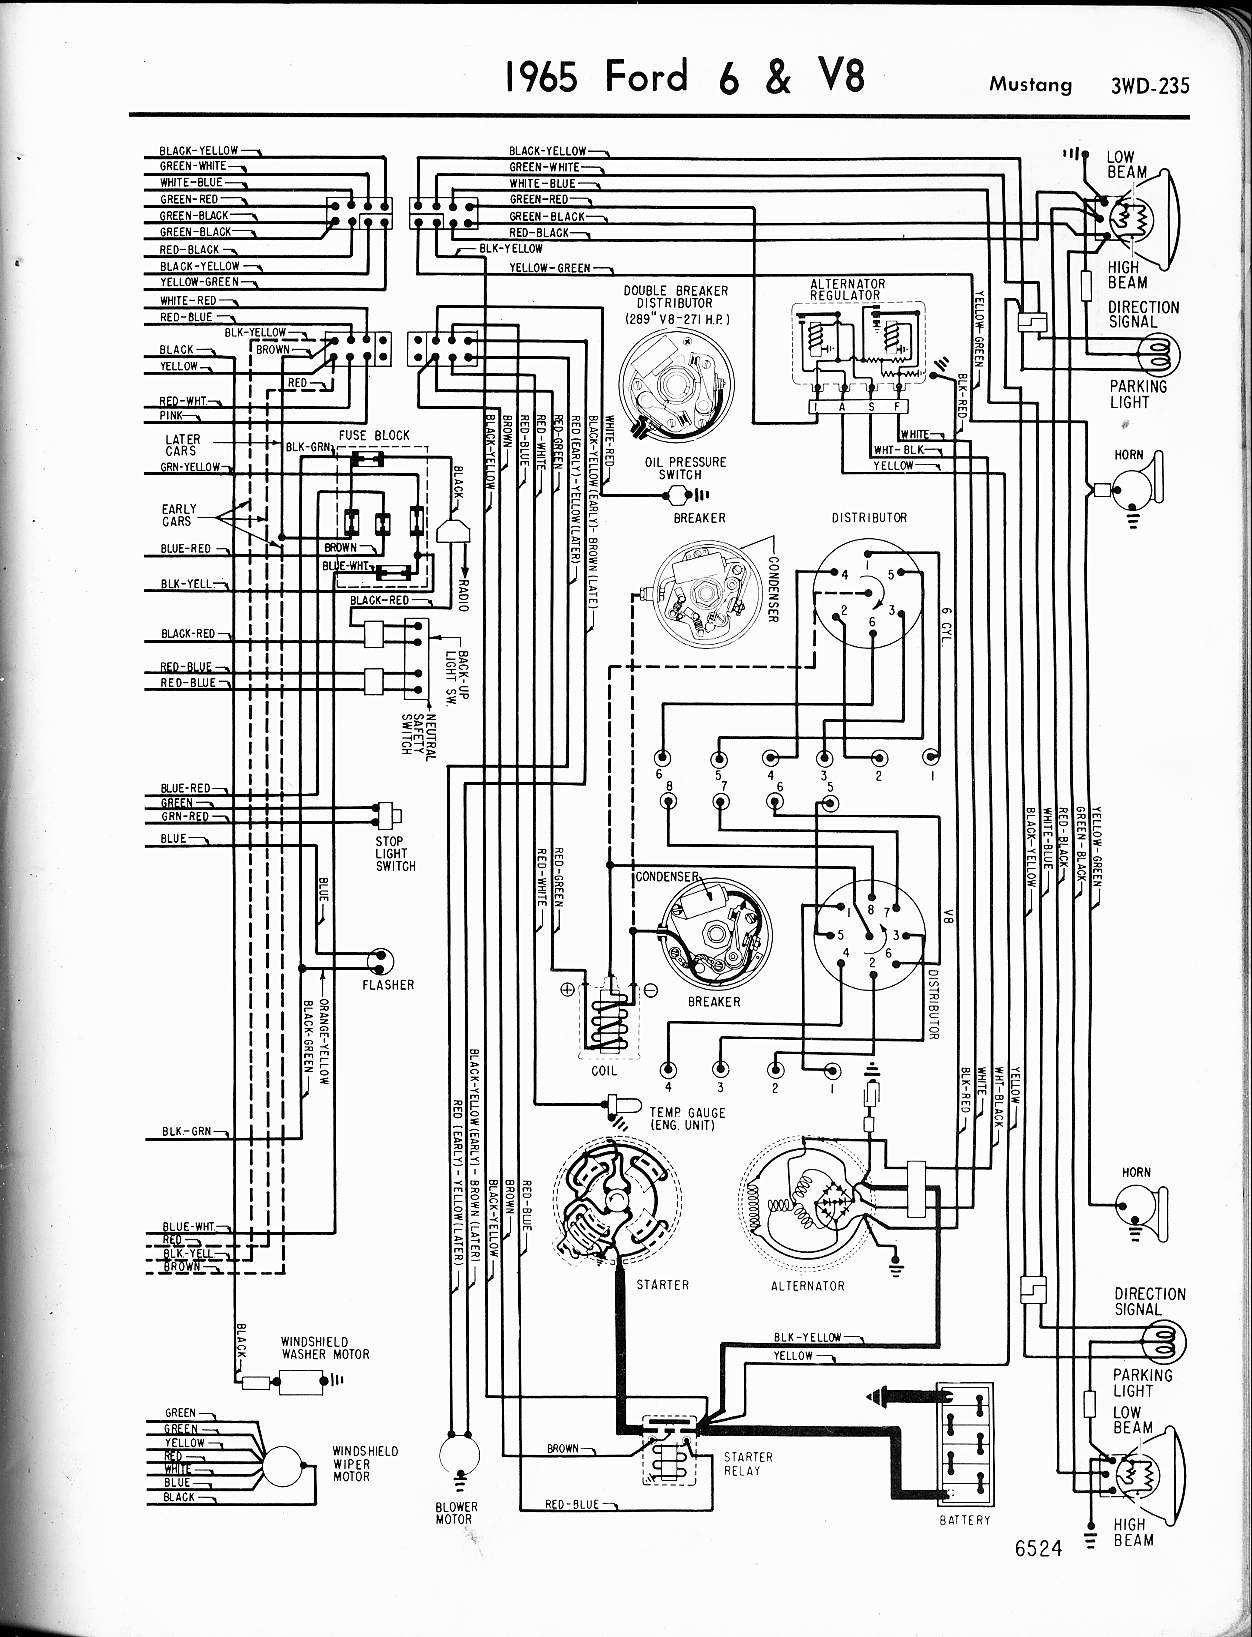 1965_mustang_wiring_2 ford diagrams Terminator Time Loop Diagram at reclaimingppi.co